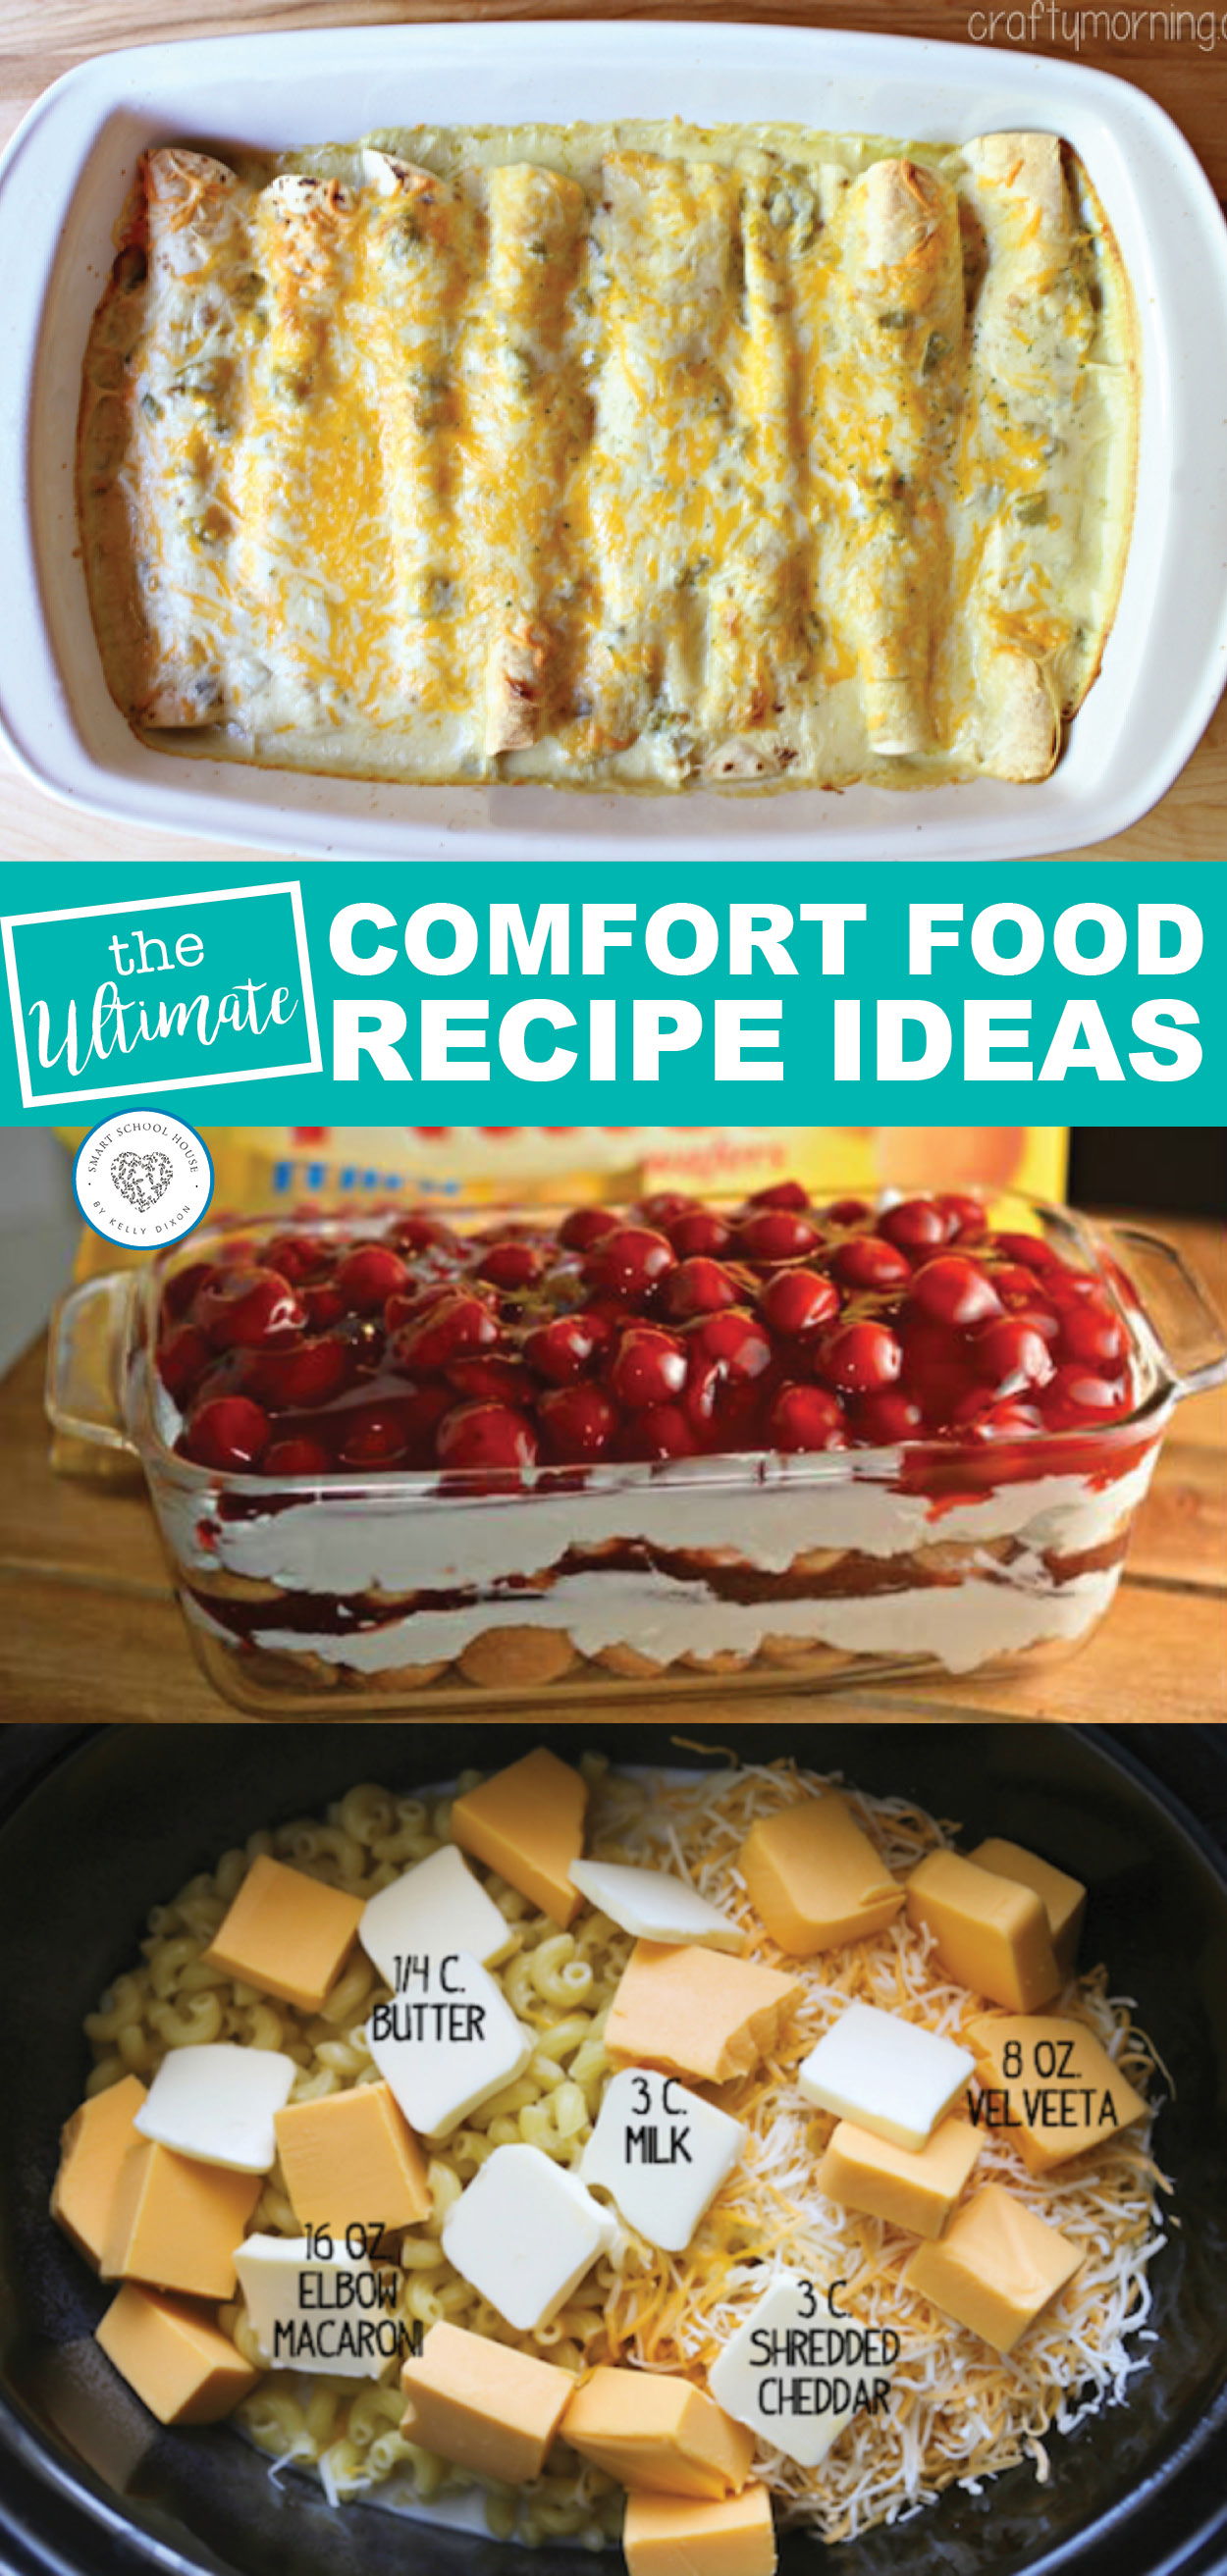 Hard Day Comfort Food - save these recipes for when you have a bad day! Everybody needs comfort food now and again.